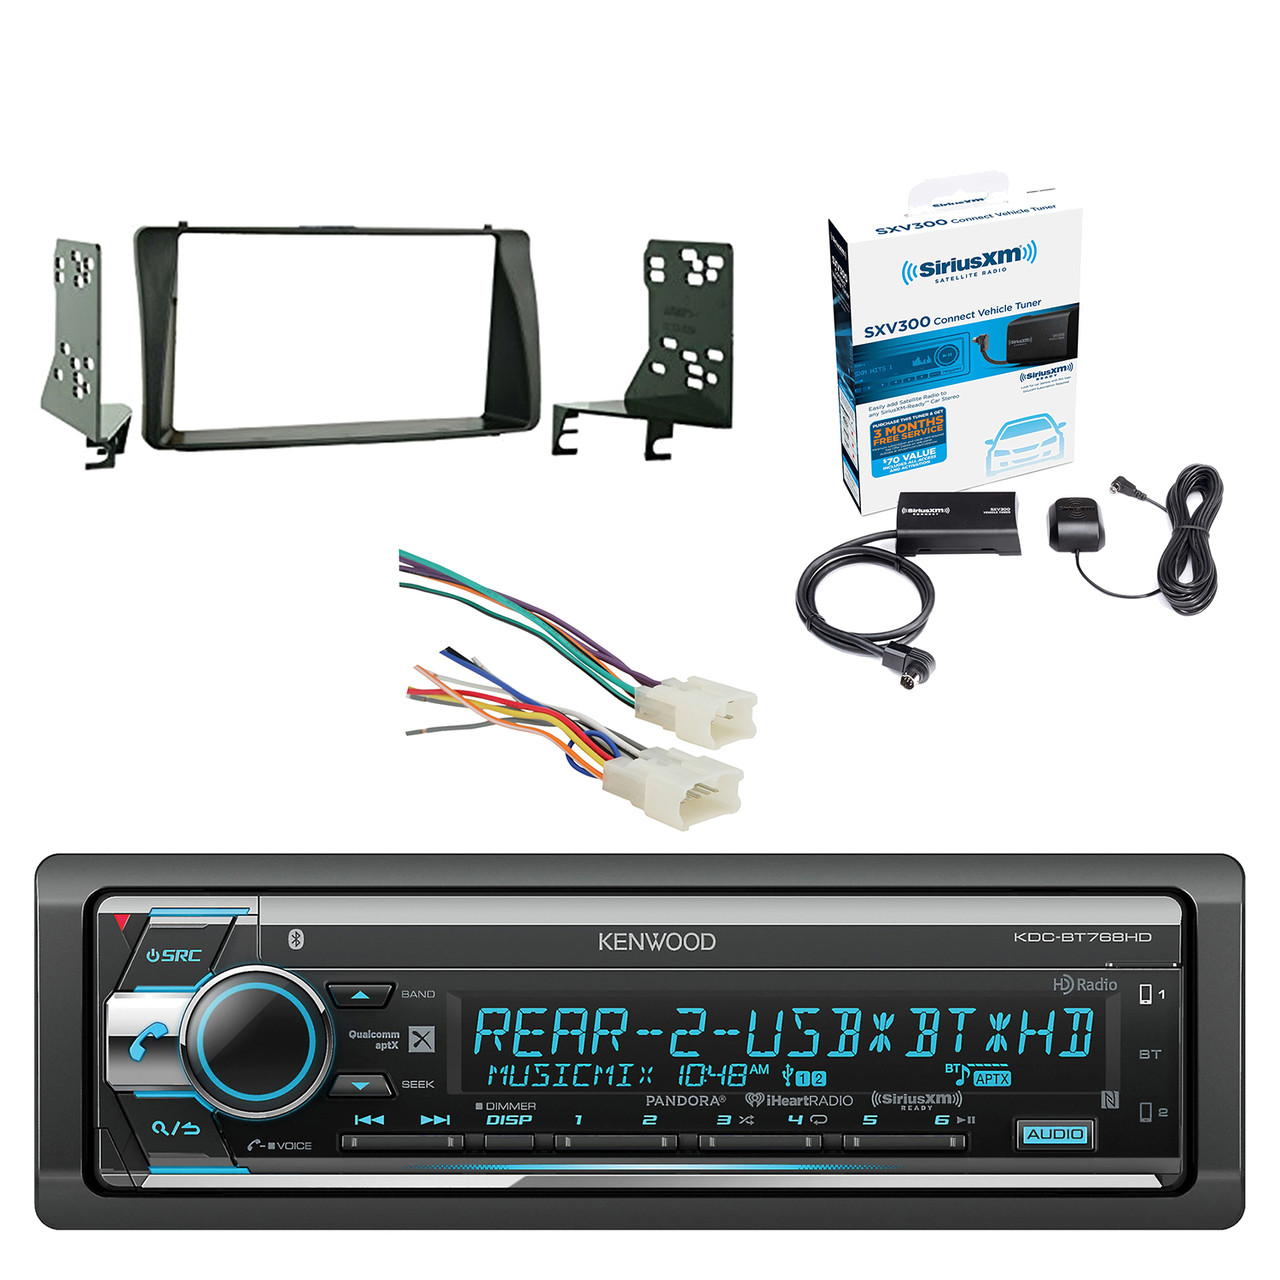 kenwood single din cd am fm car audio receiver with built in car radio receiver wiring [ 1280 x 1280 Pixel ]